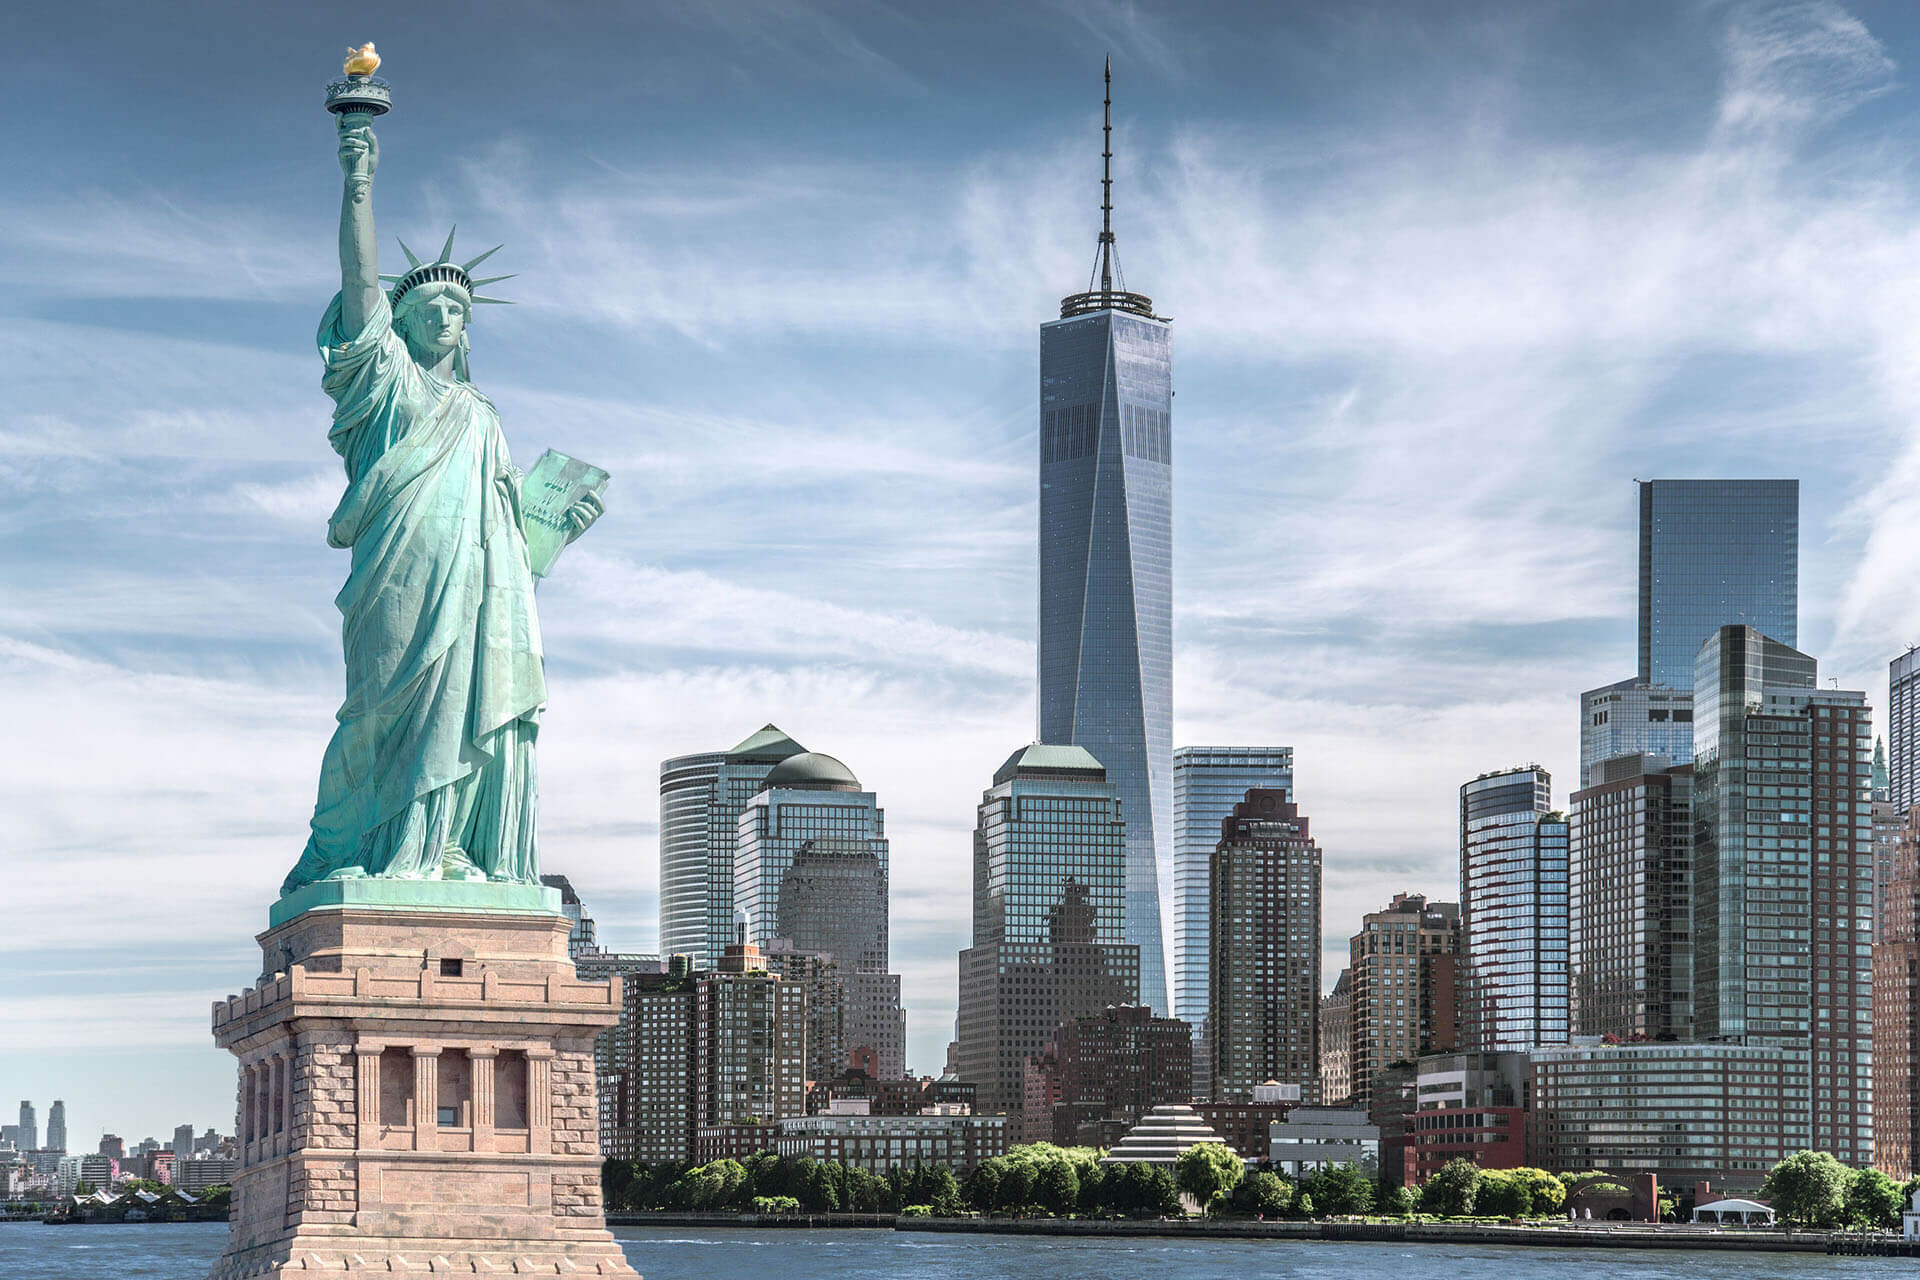 US: USCIS Allows Resubmission of Rejected FY 2021 H-1B Petitions